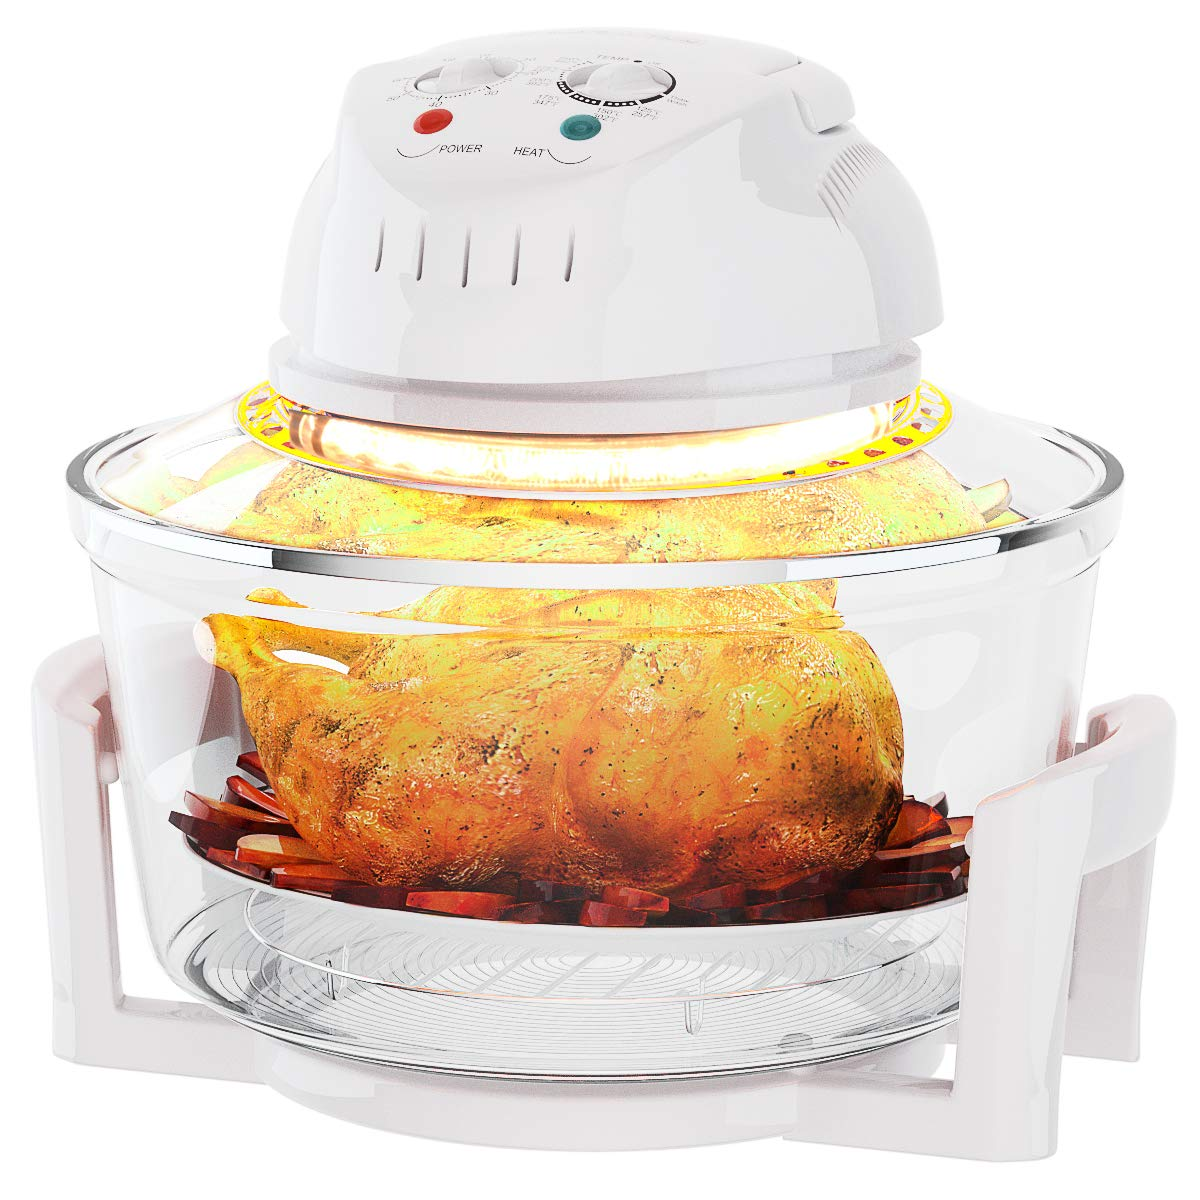 COSTWAY Infrared Halogen Convection Oven with Stainless Steel Extender Ring